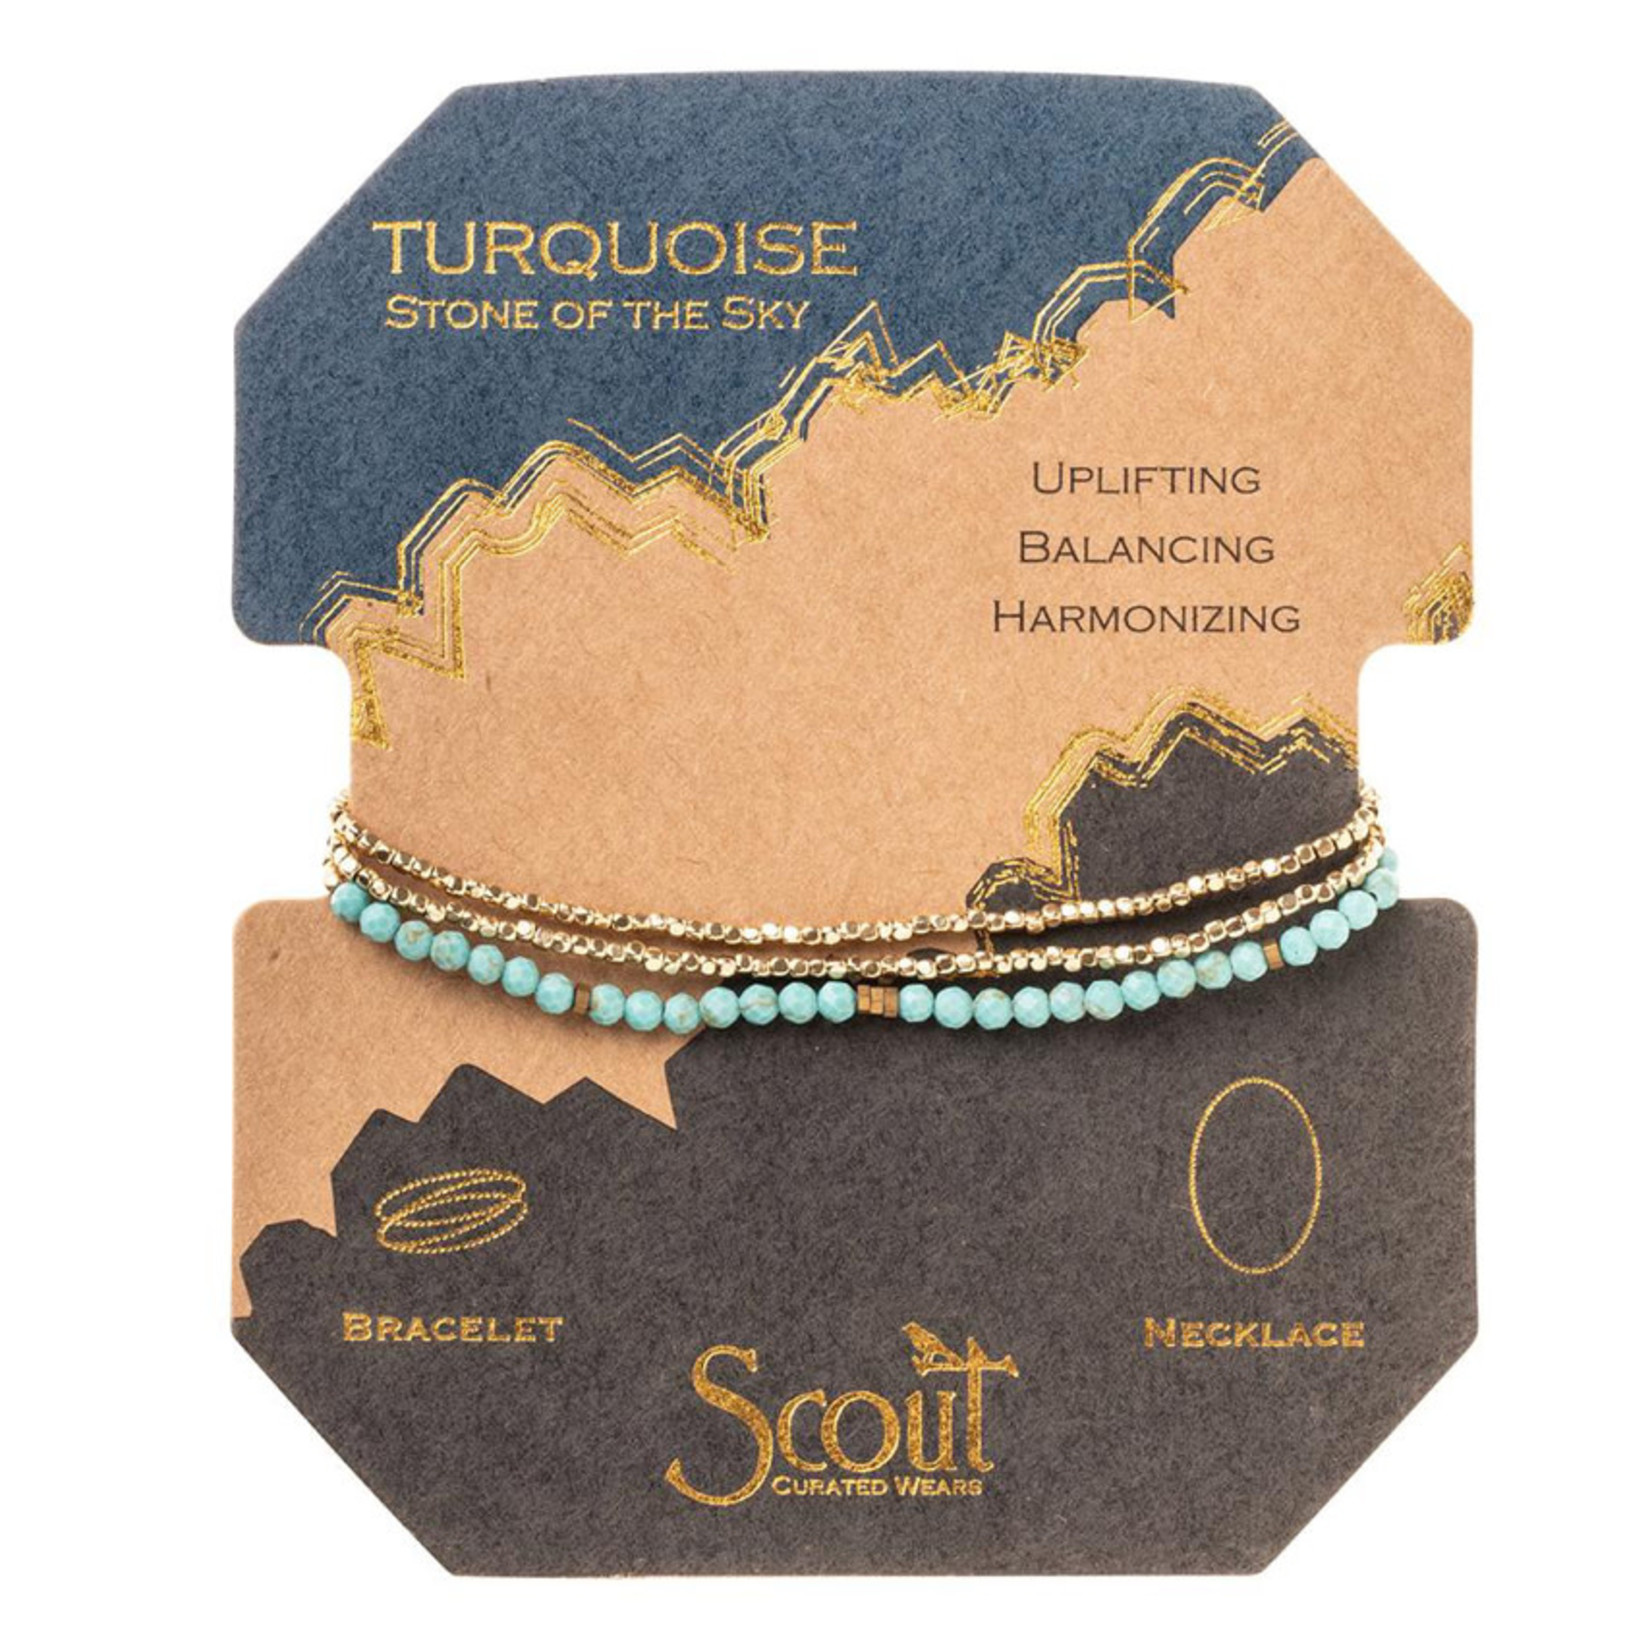 Scout Curated Wares Delicate wrap bracelets